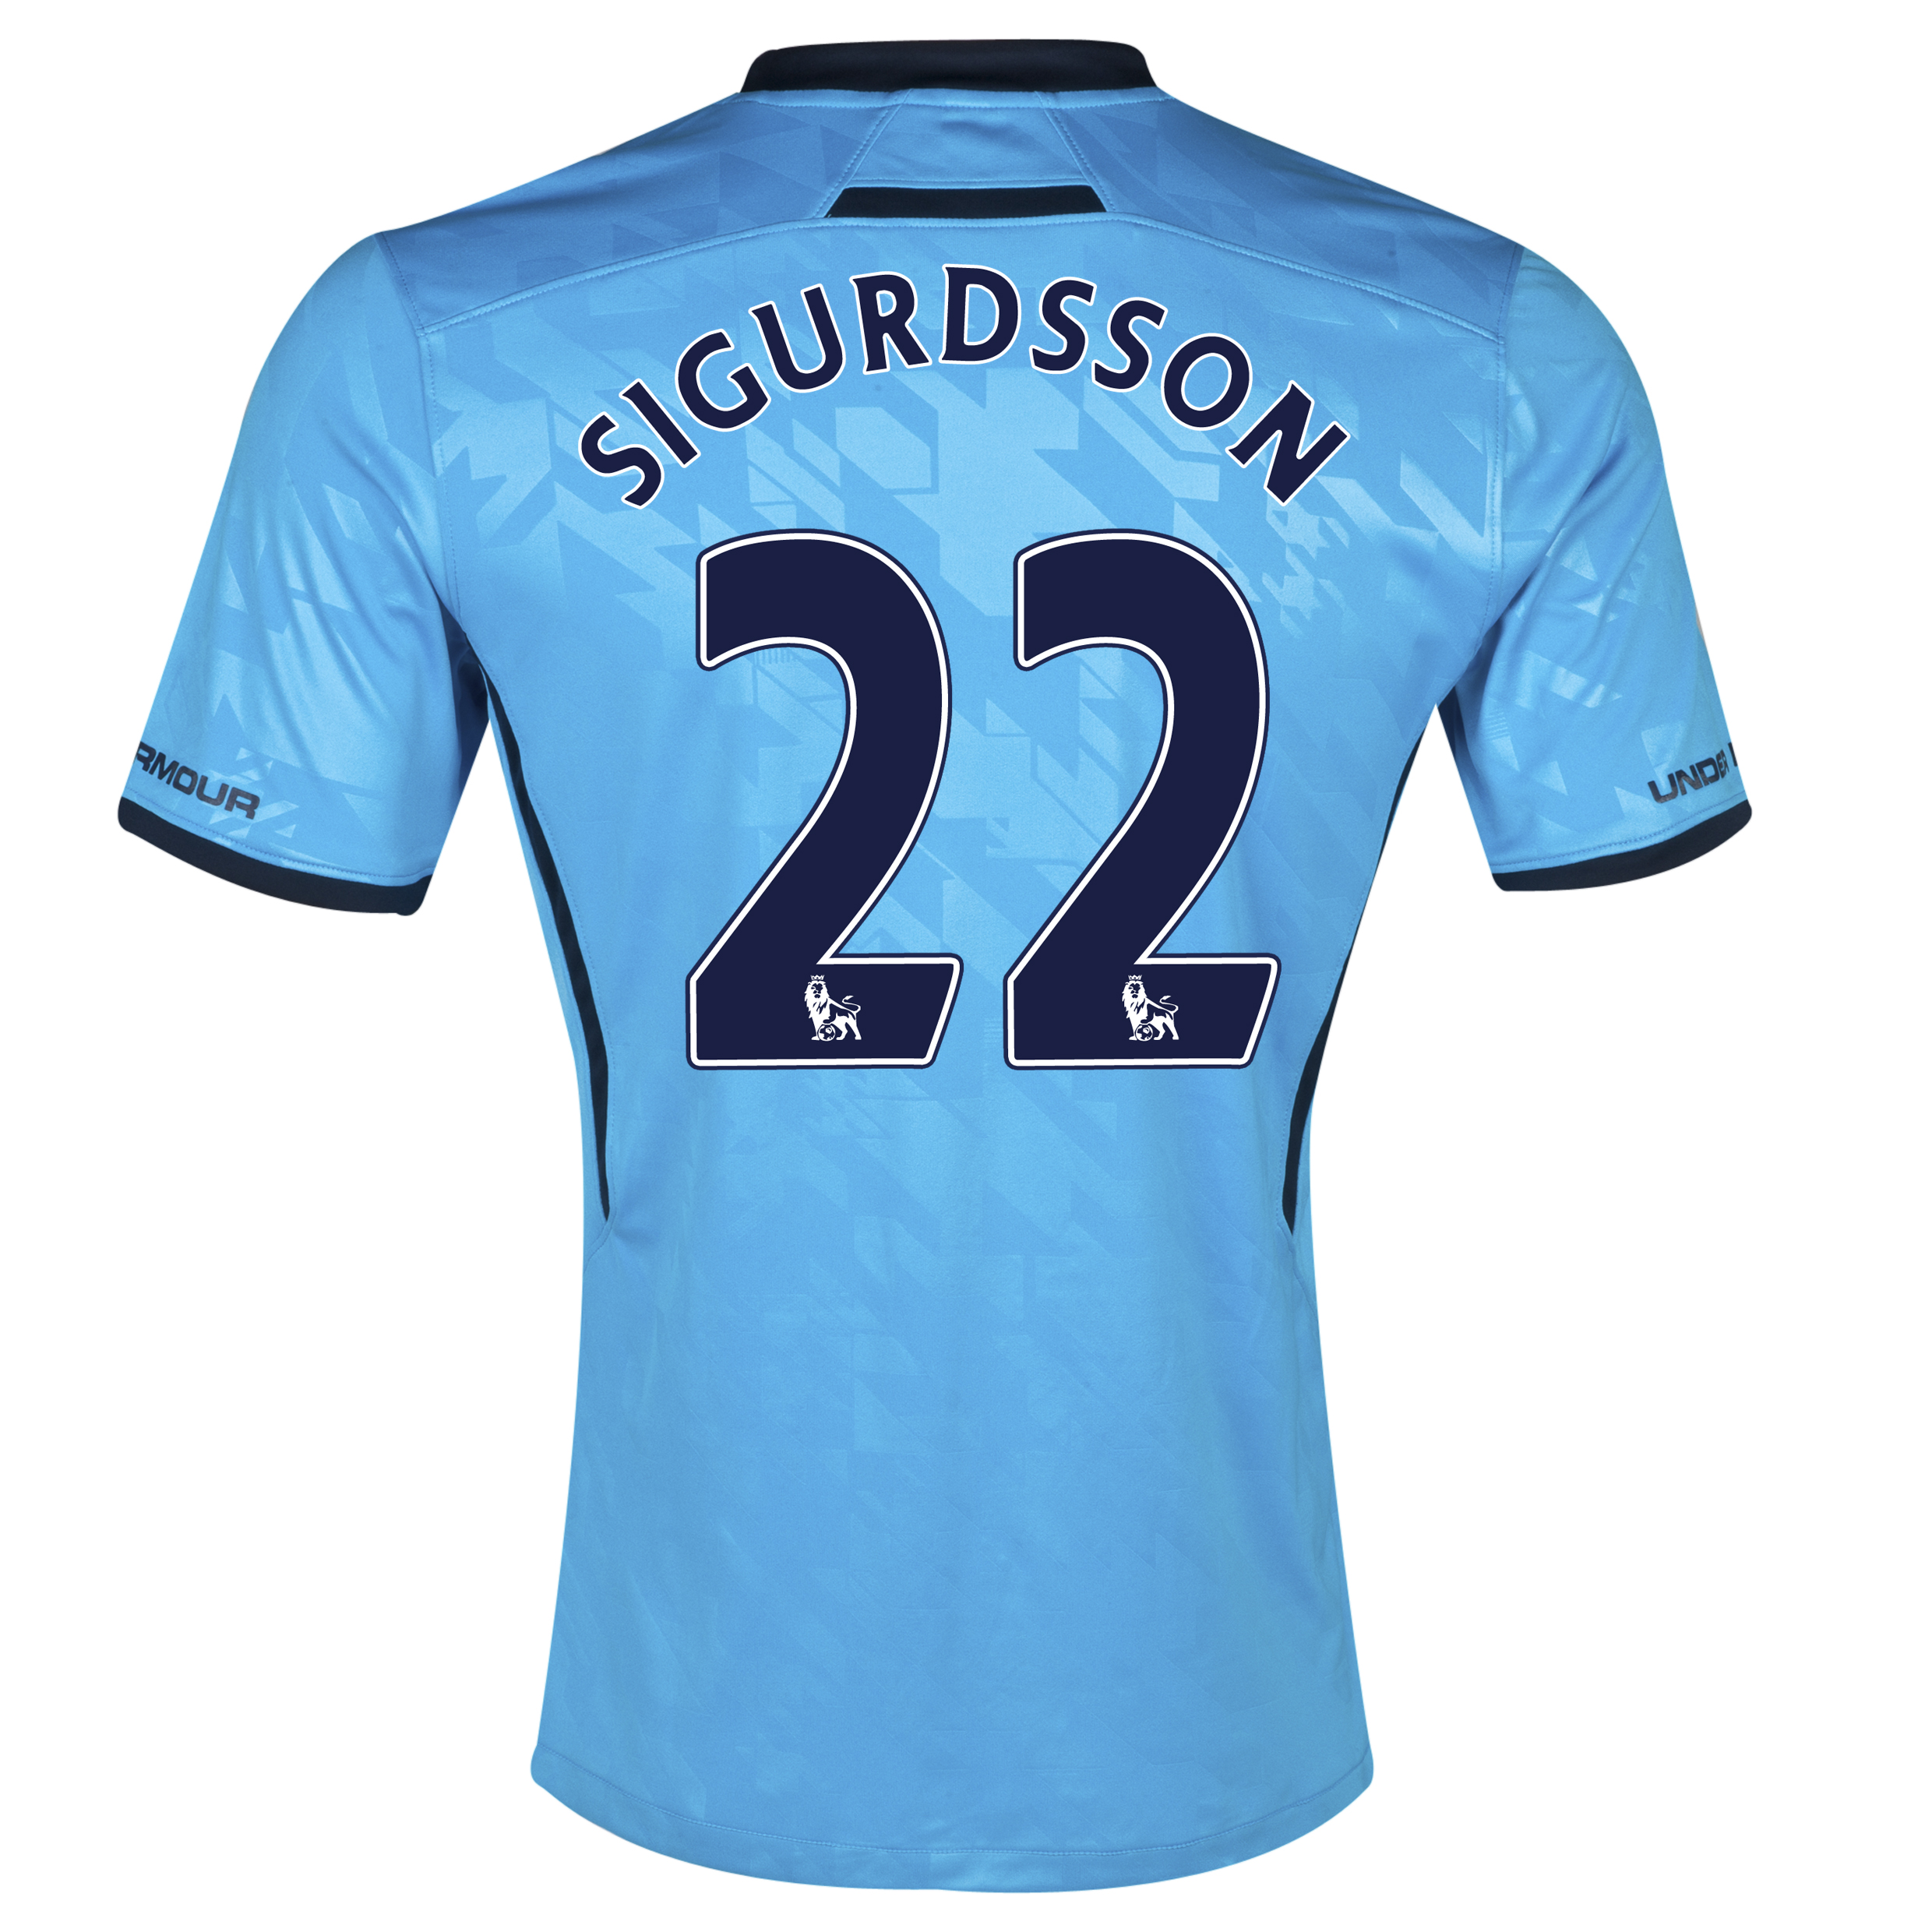 Tottenham Hotspur Away Shirt 2013/14 - Womens with Sigurdsson 22 printing